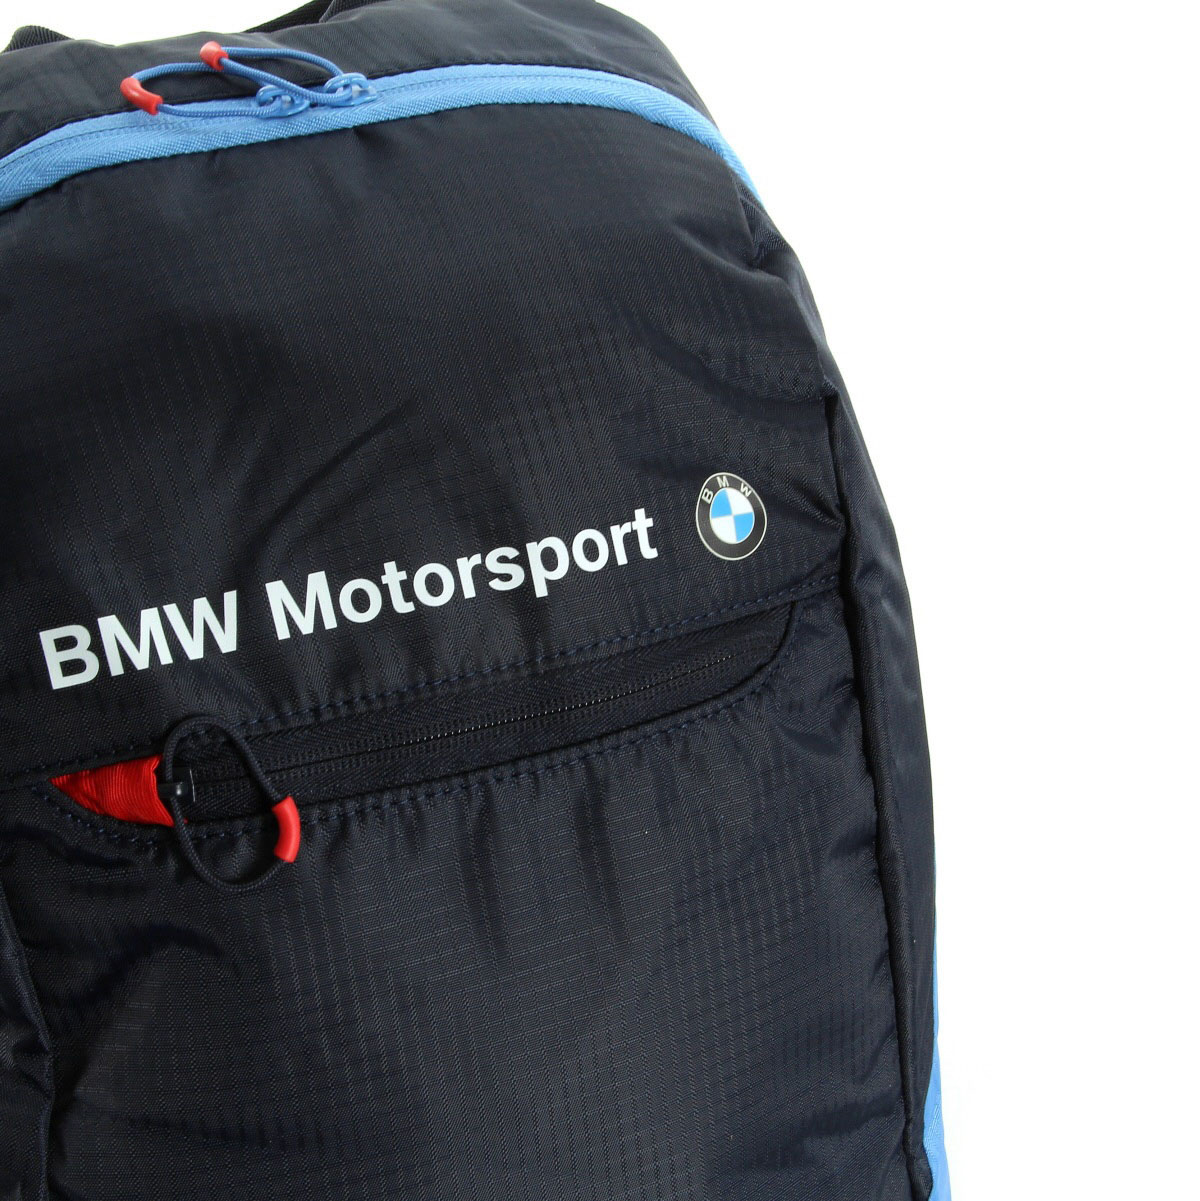 puma bmw motorsport backpack 07393202 sacs dos unisexe. Black Bedroom Furniture Sets. Home Design Ideas